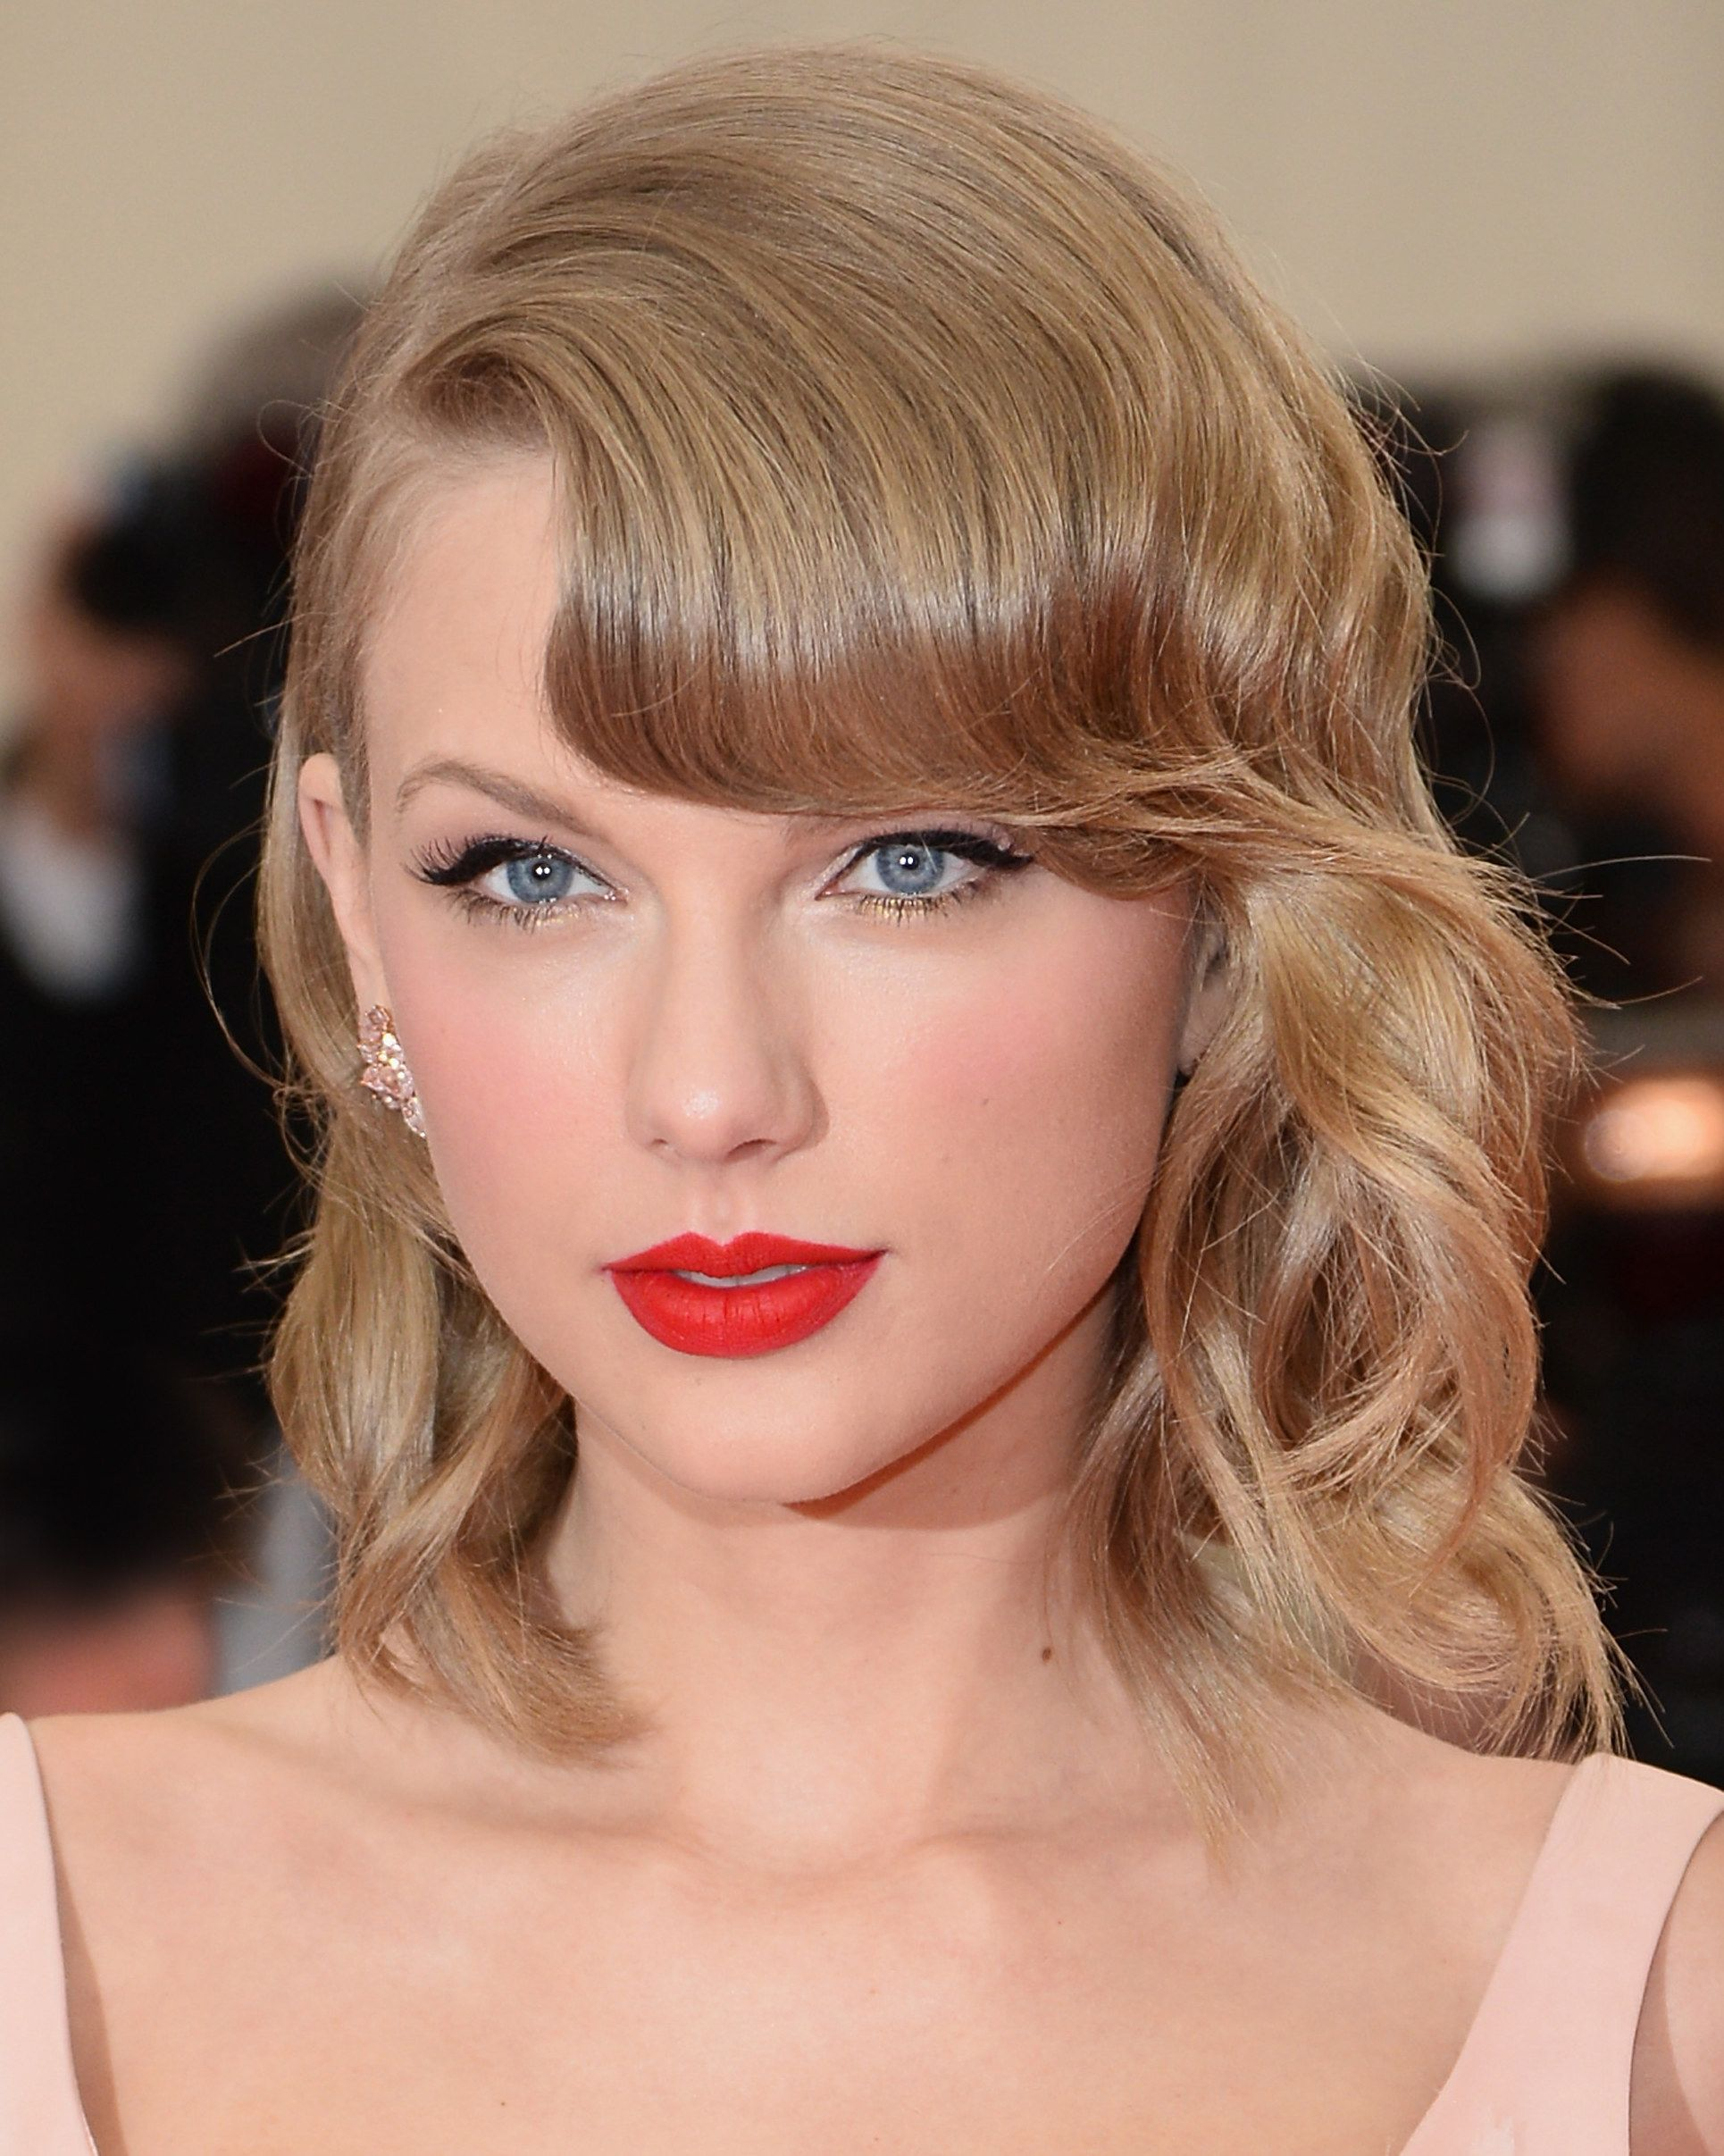 The 25 Best Beauty Trends Of All Time Taylor Swift Makeup Beauty Taylor Swift